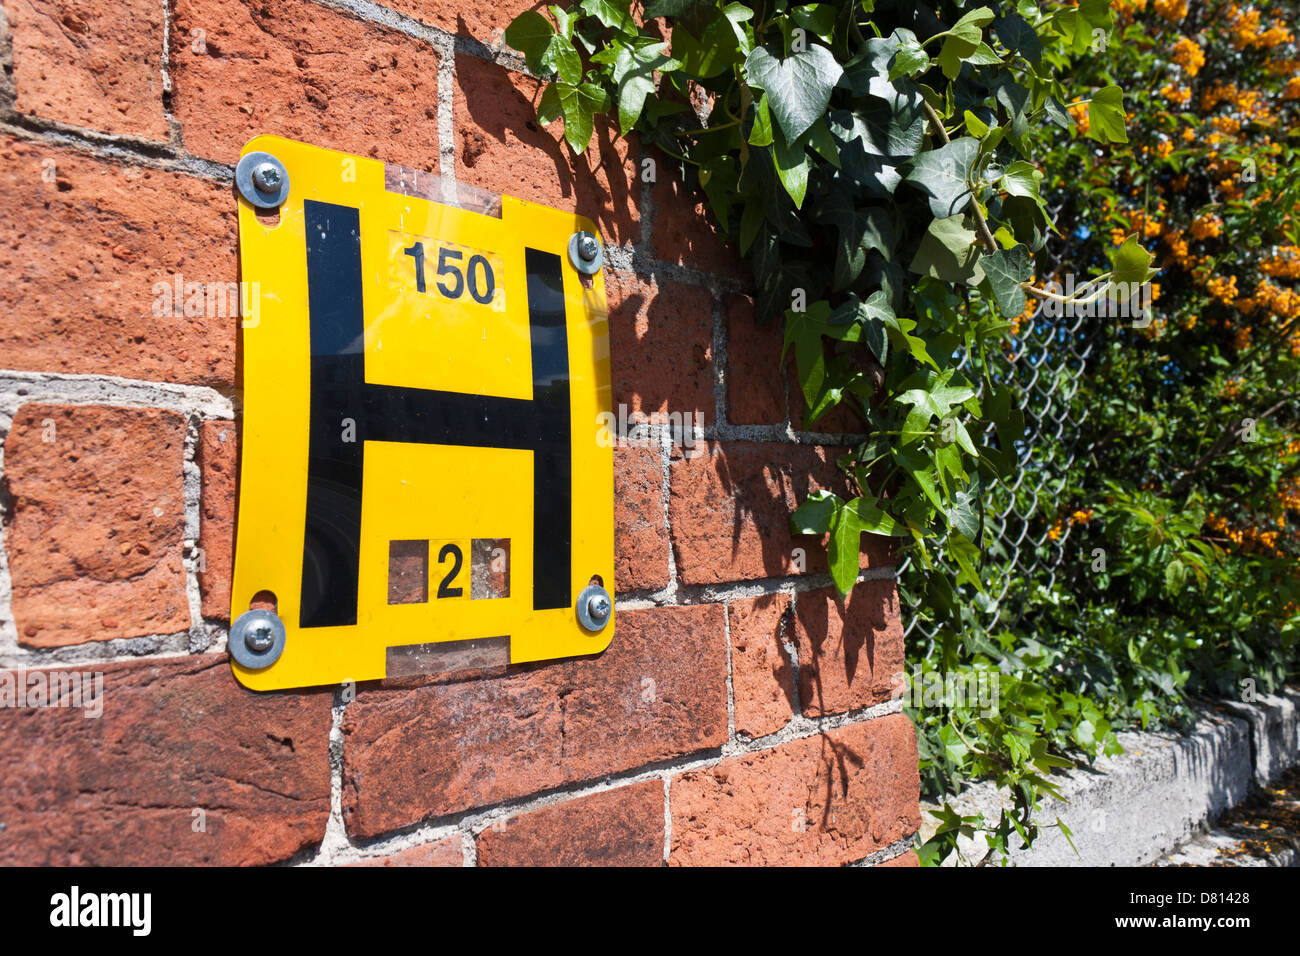 Metric water hydrant sign on wall at roadside. - Stock Image